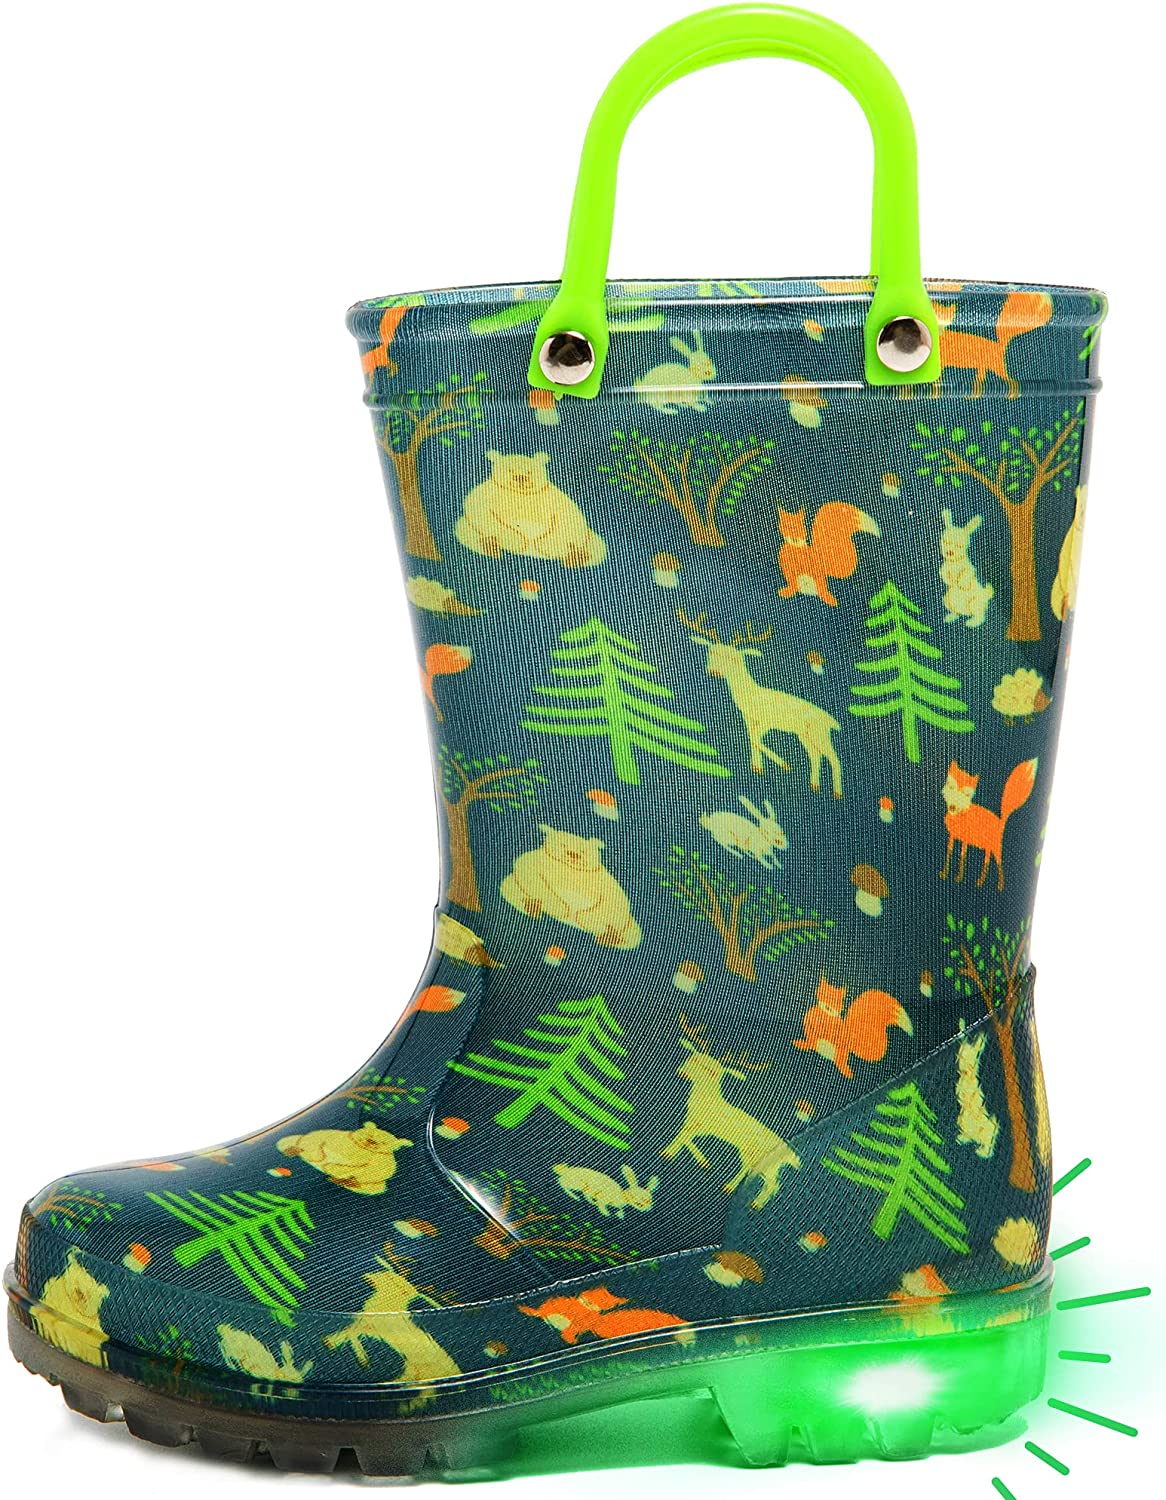 dripdrop Kids Rain Boots, Girls Boys Light Up Boots with Adorable Printed and Easy-On Handles